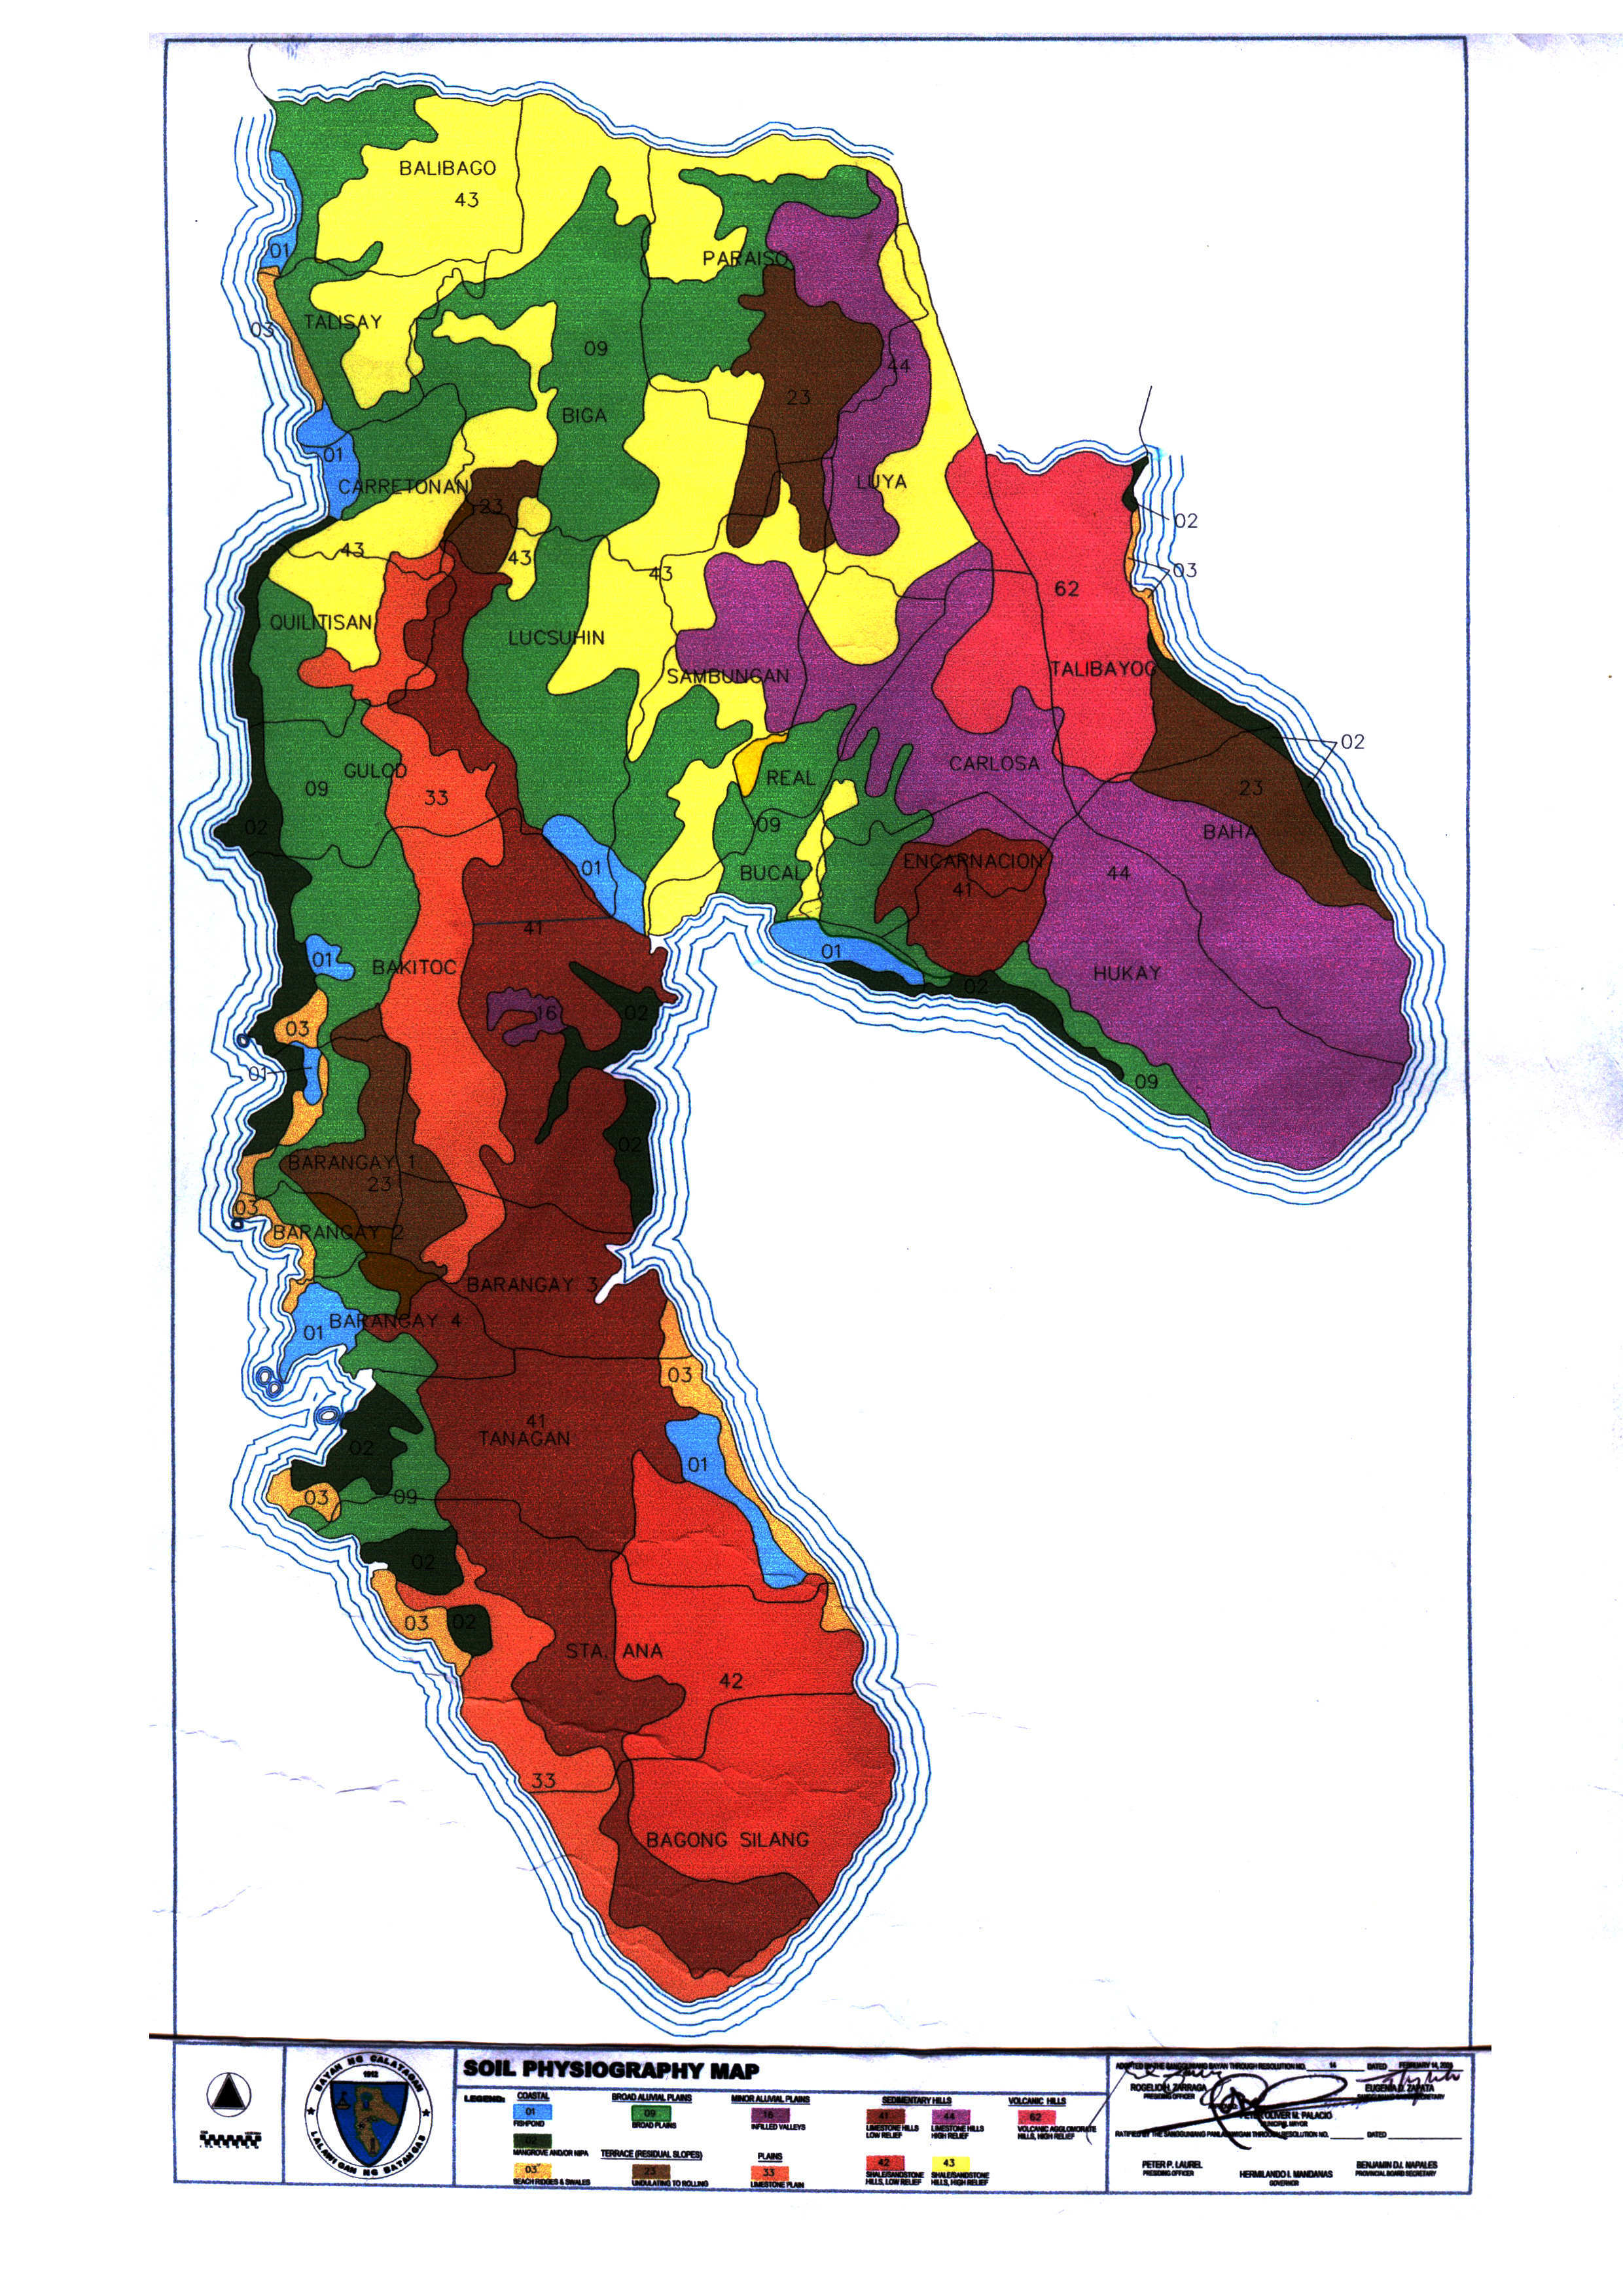 soil physiography map